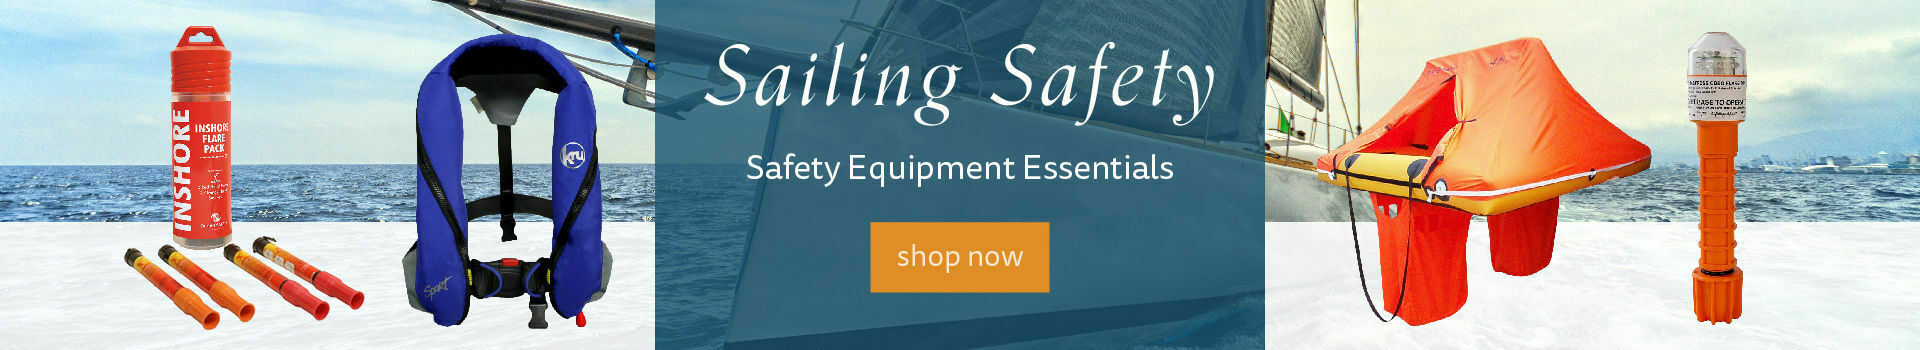 Sailing Safety Equipment